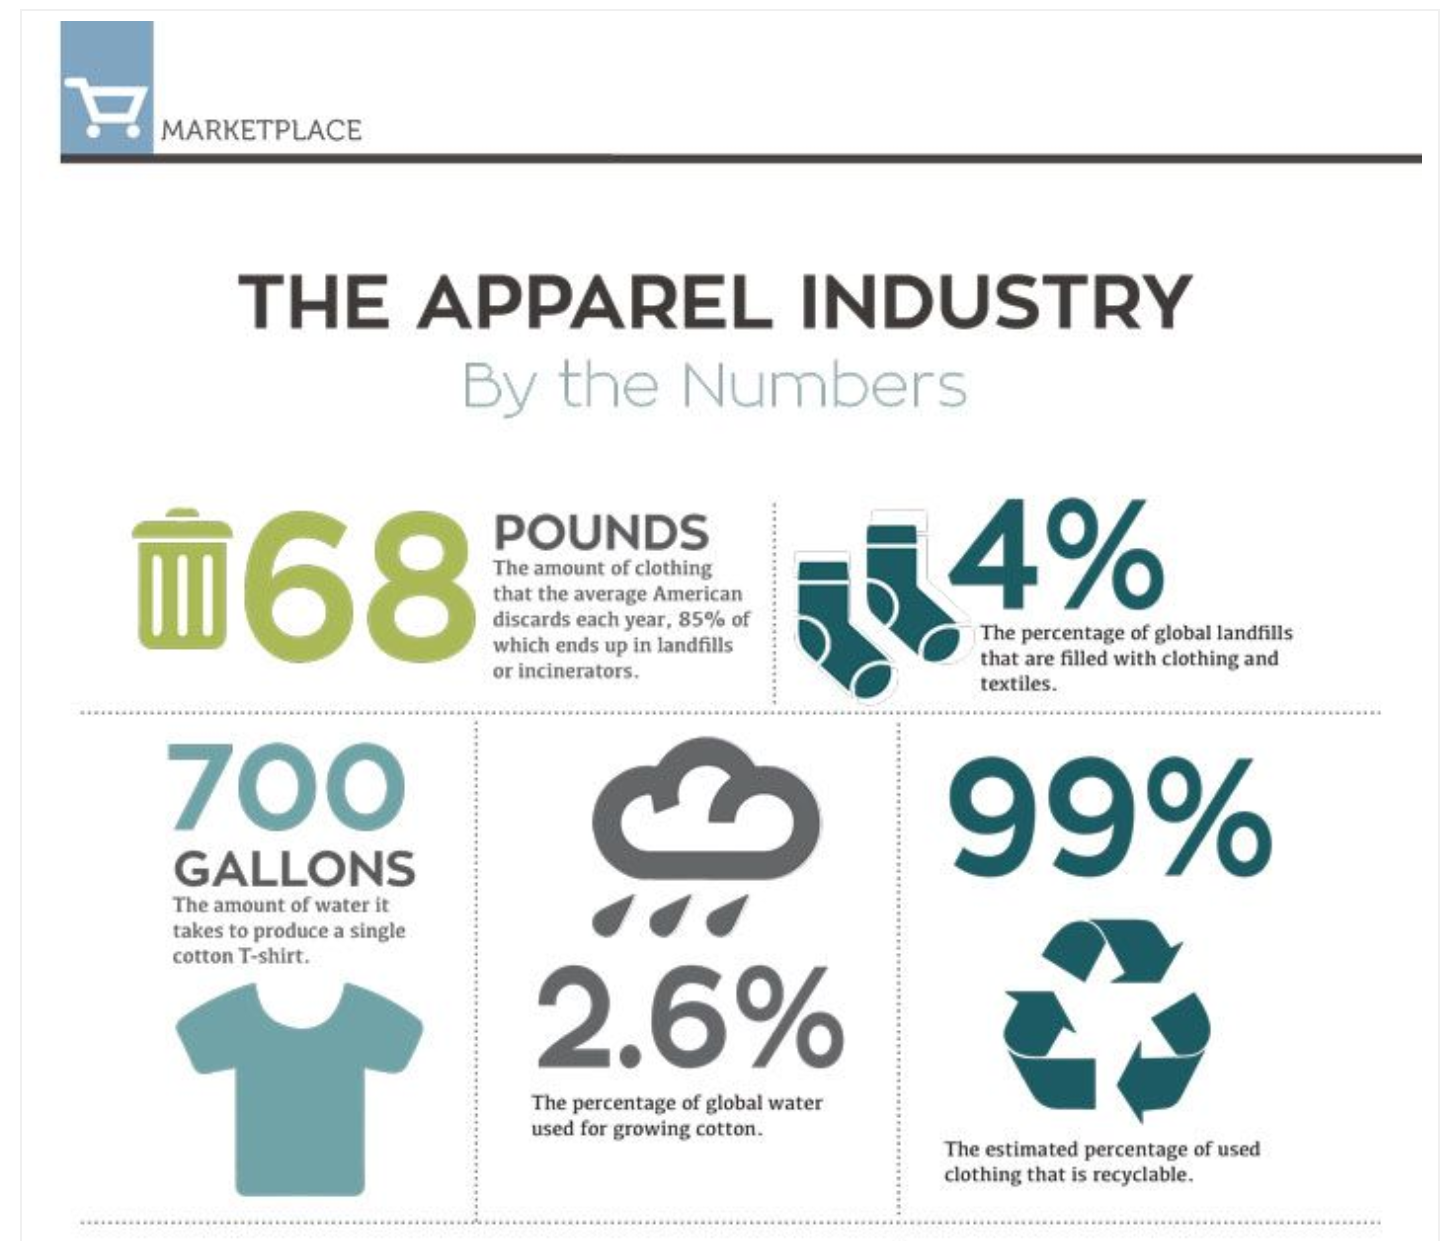 The average american discards 68lbs of clothing each year and it takes 700 gallons of water to produce one new cotton tshirt, additional statistics are available on fashionABC.org